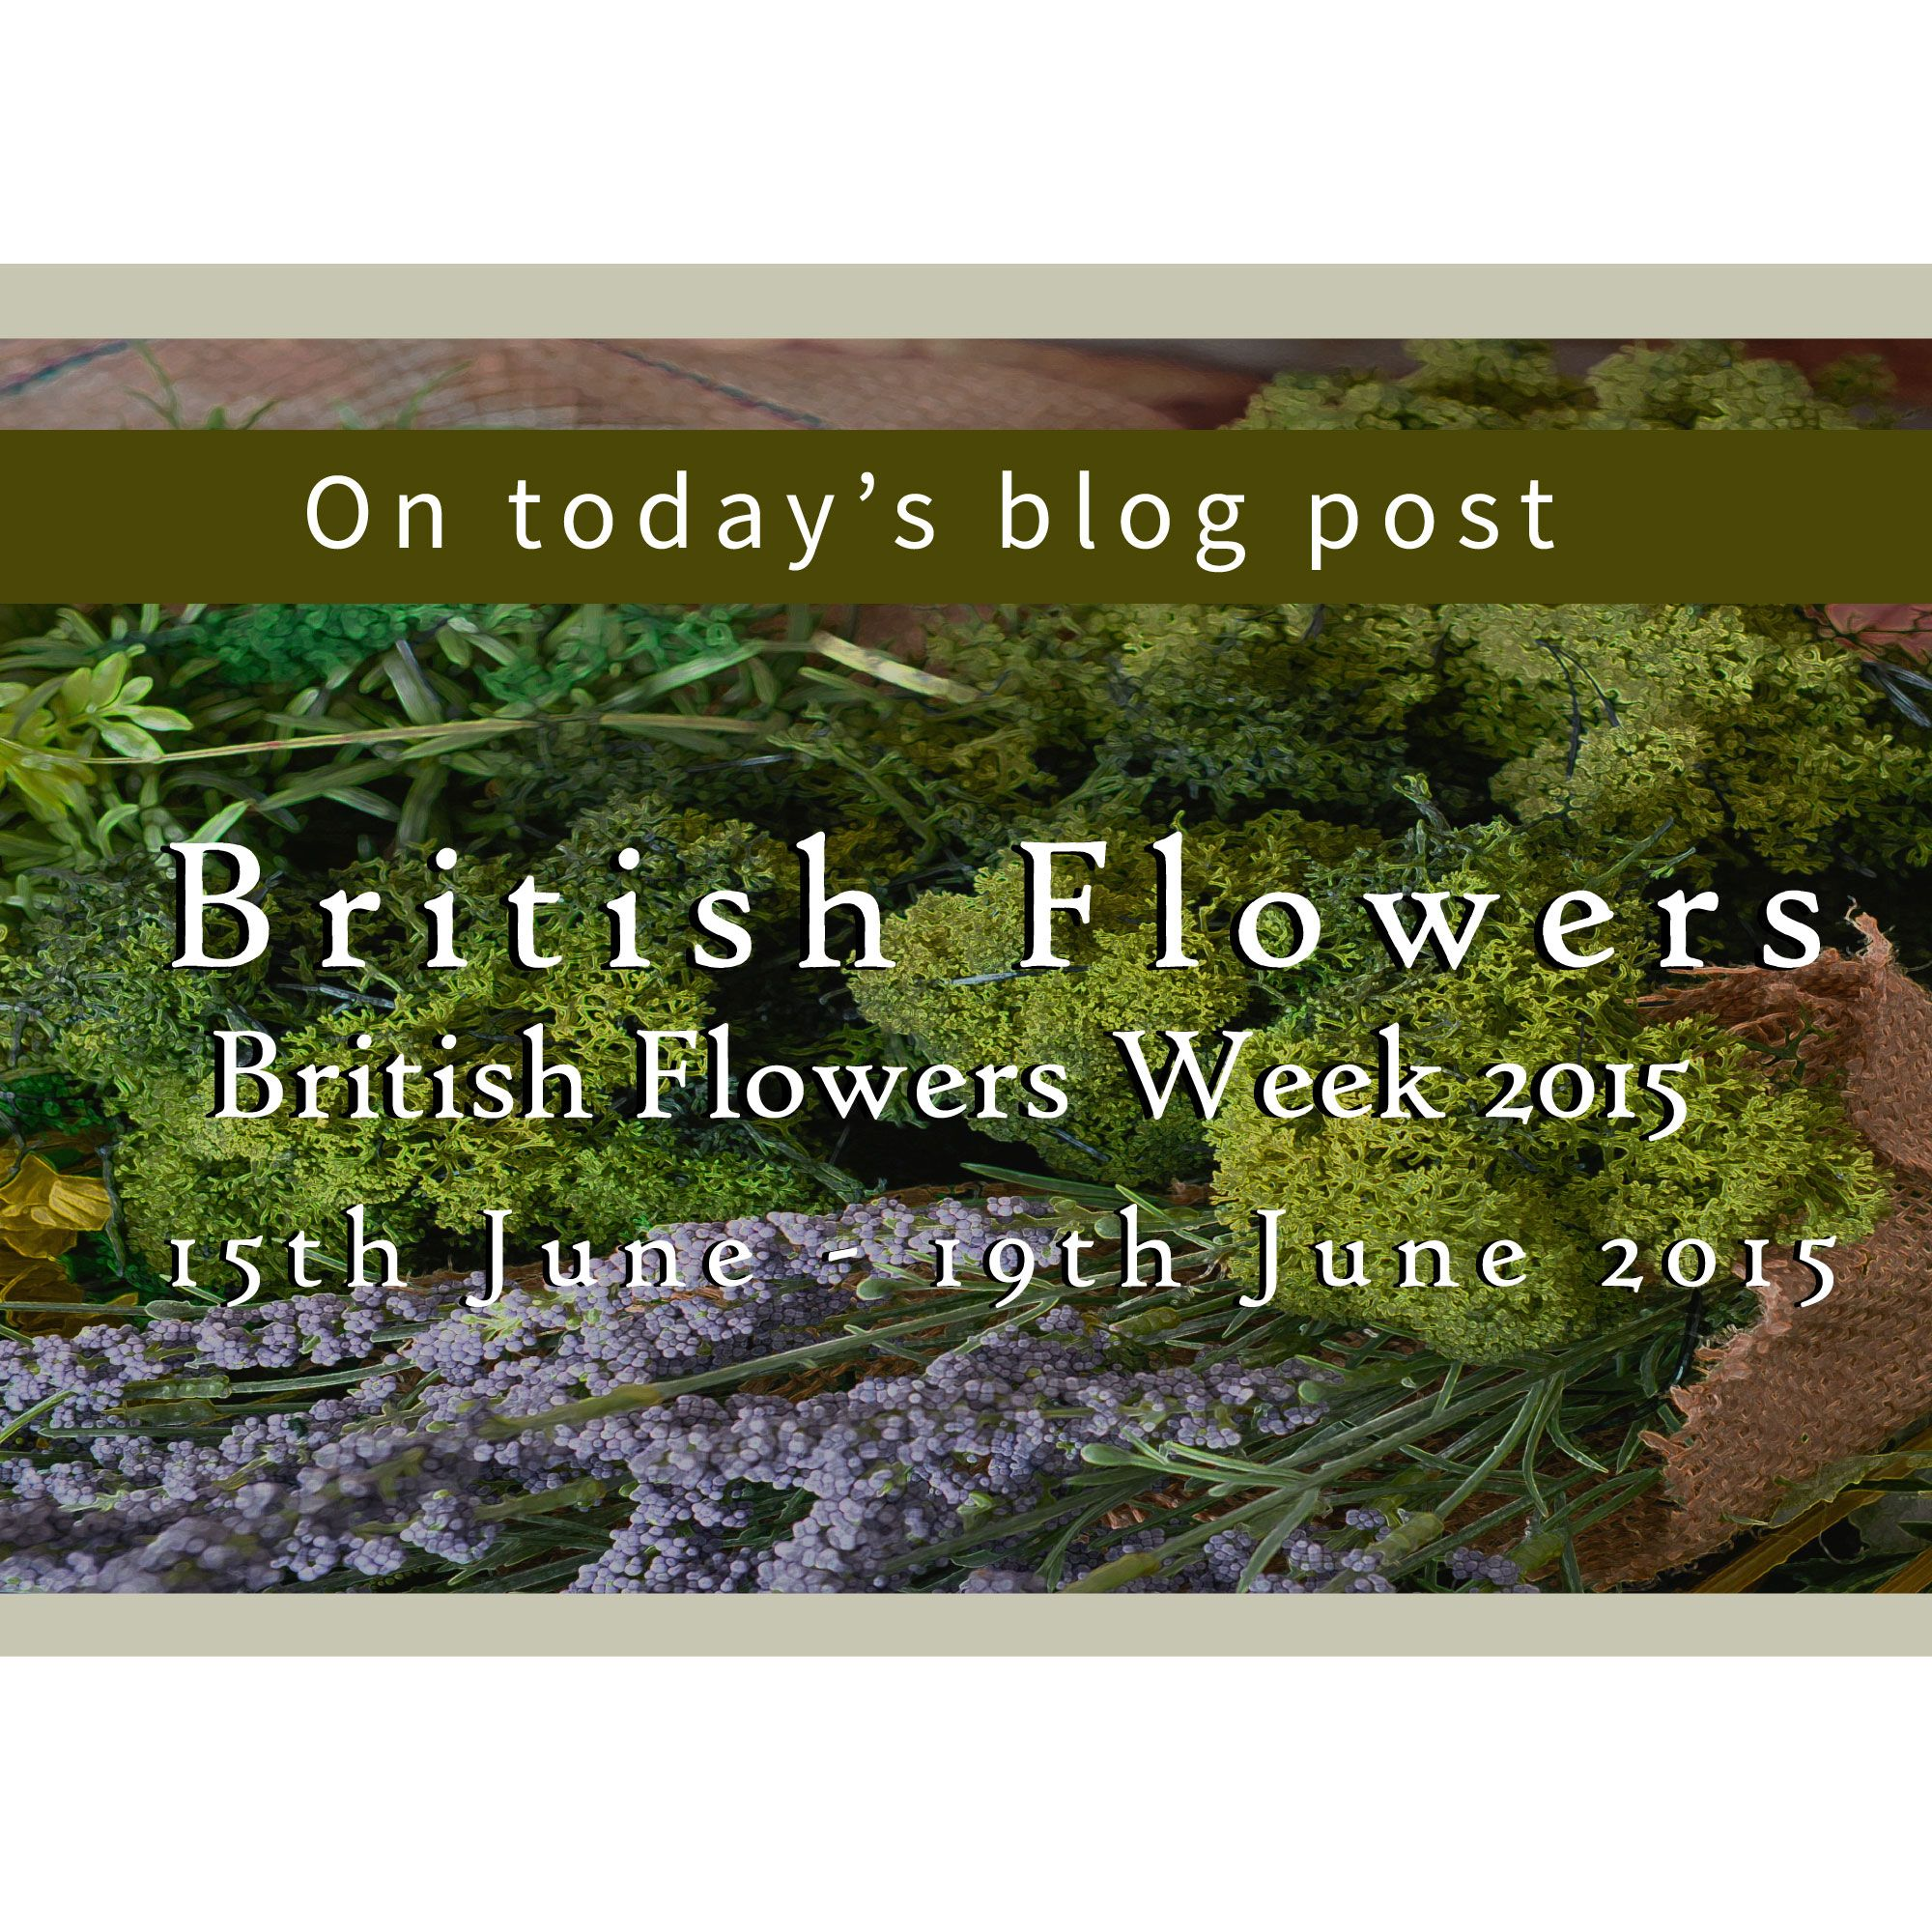 Beautiful British blooms - take a look at the Country Baskets blog for our favourite florals!  #British #flowers #BritishFlowersWeek  http://www.countrybaskets.co.uk/blog/2015/06/11/gb13-spotlight-on-british-flowers-for-british-flowers-week/